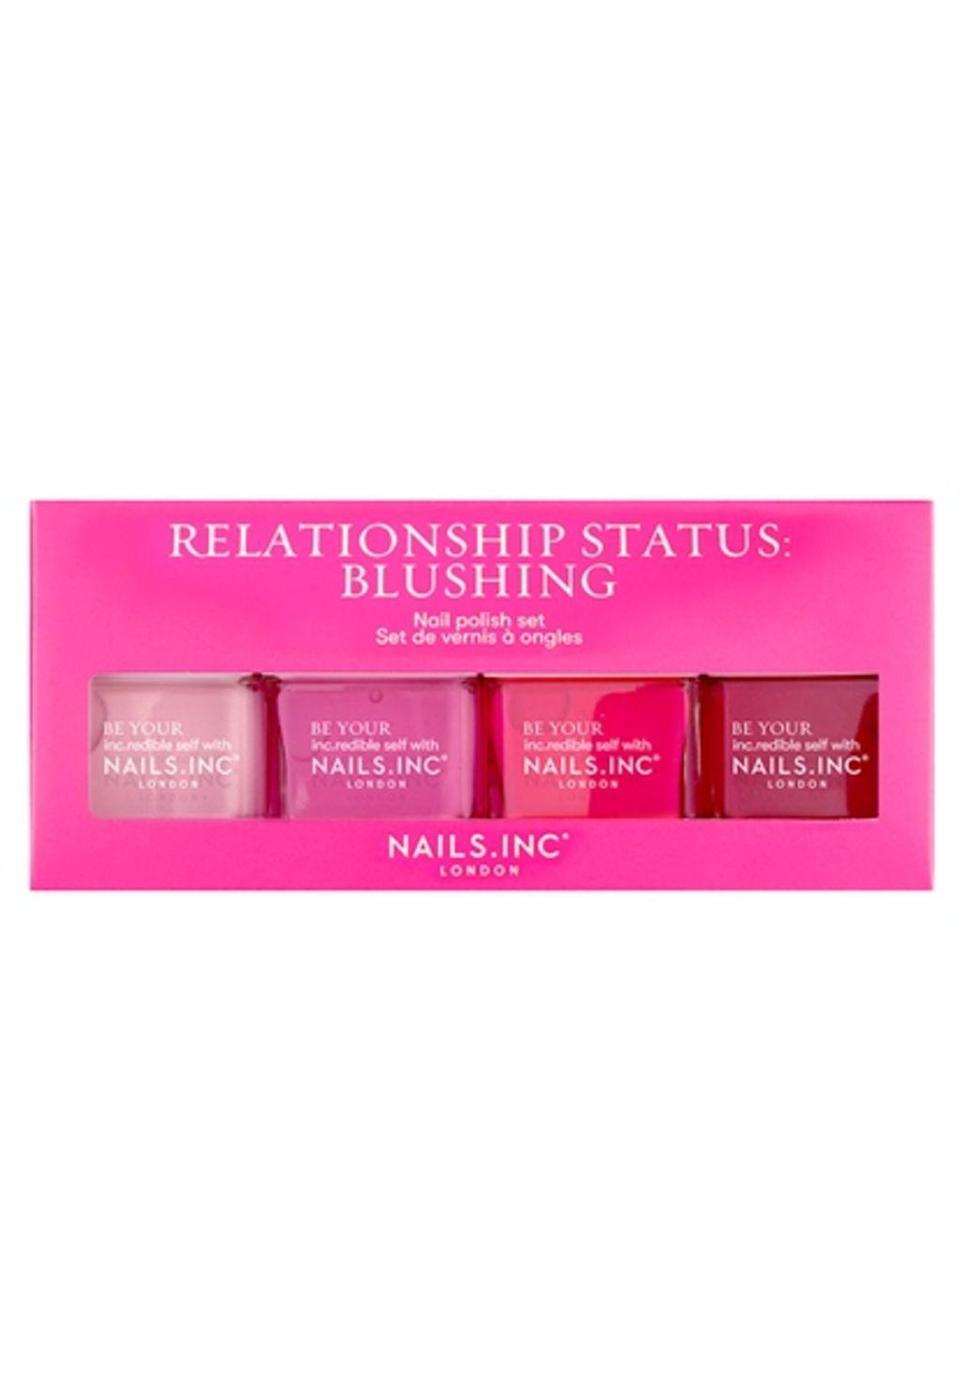 nails.inc, best valentines day gifts for her